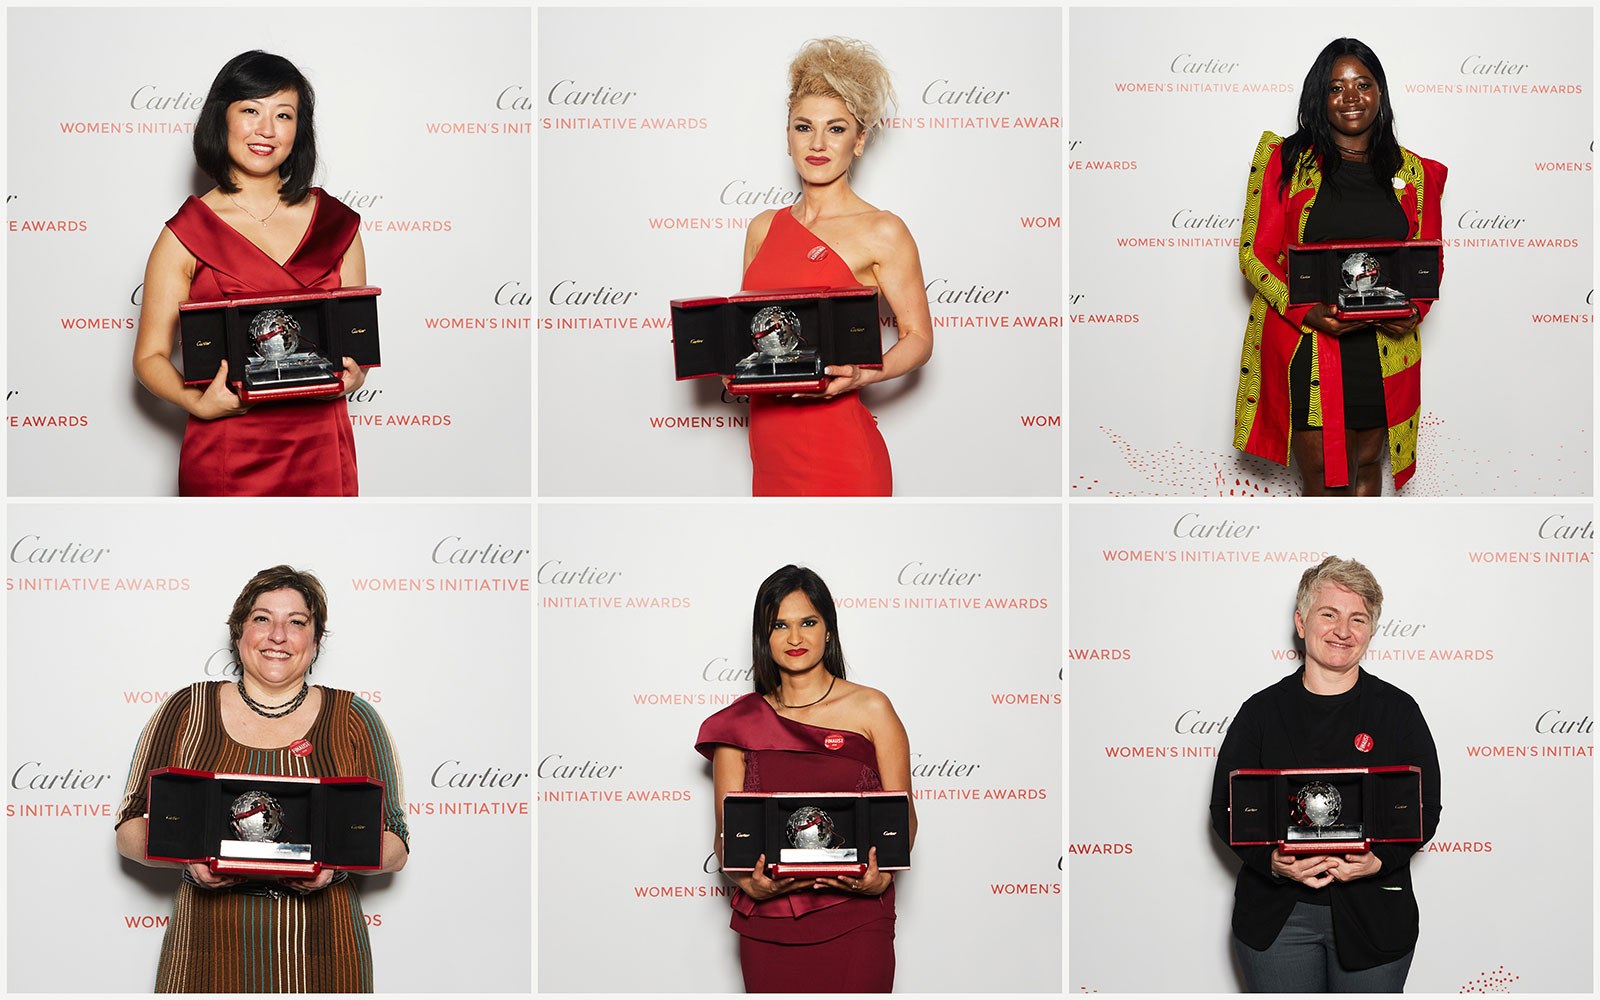 Cartier Women's Initiative Awards 2018 laureates